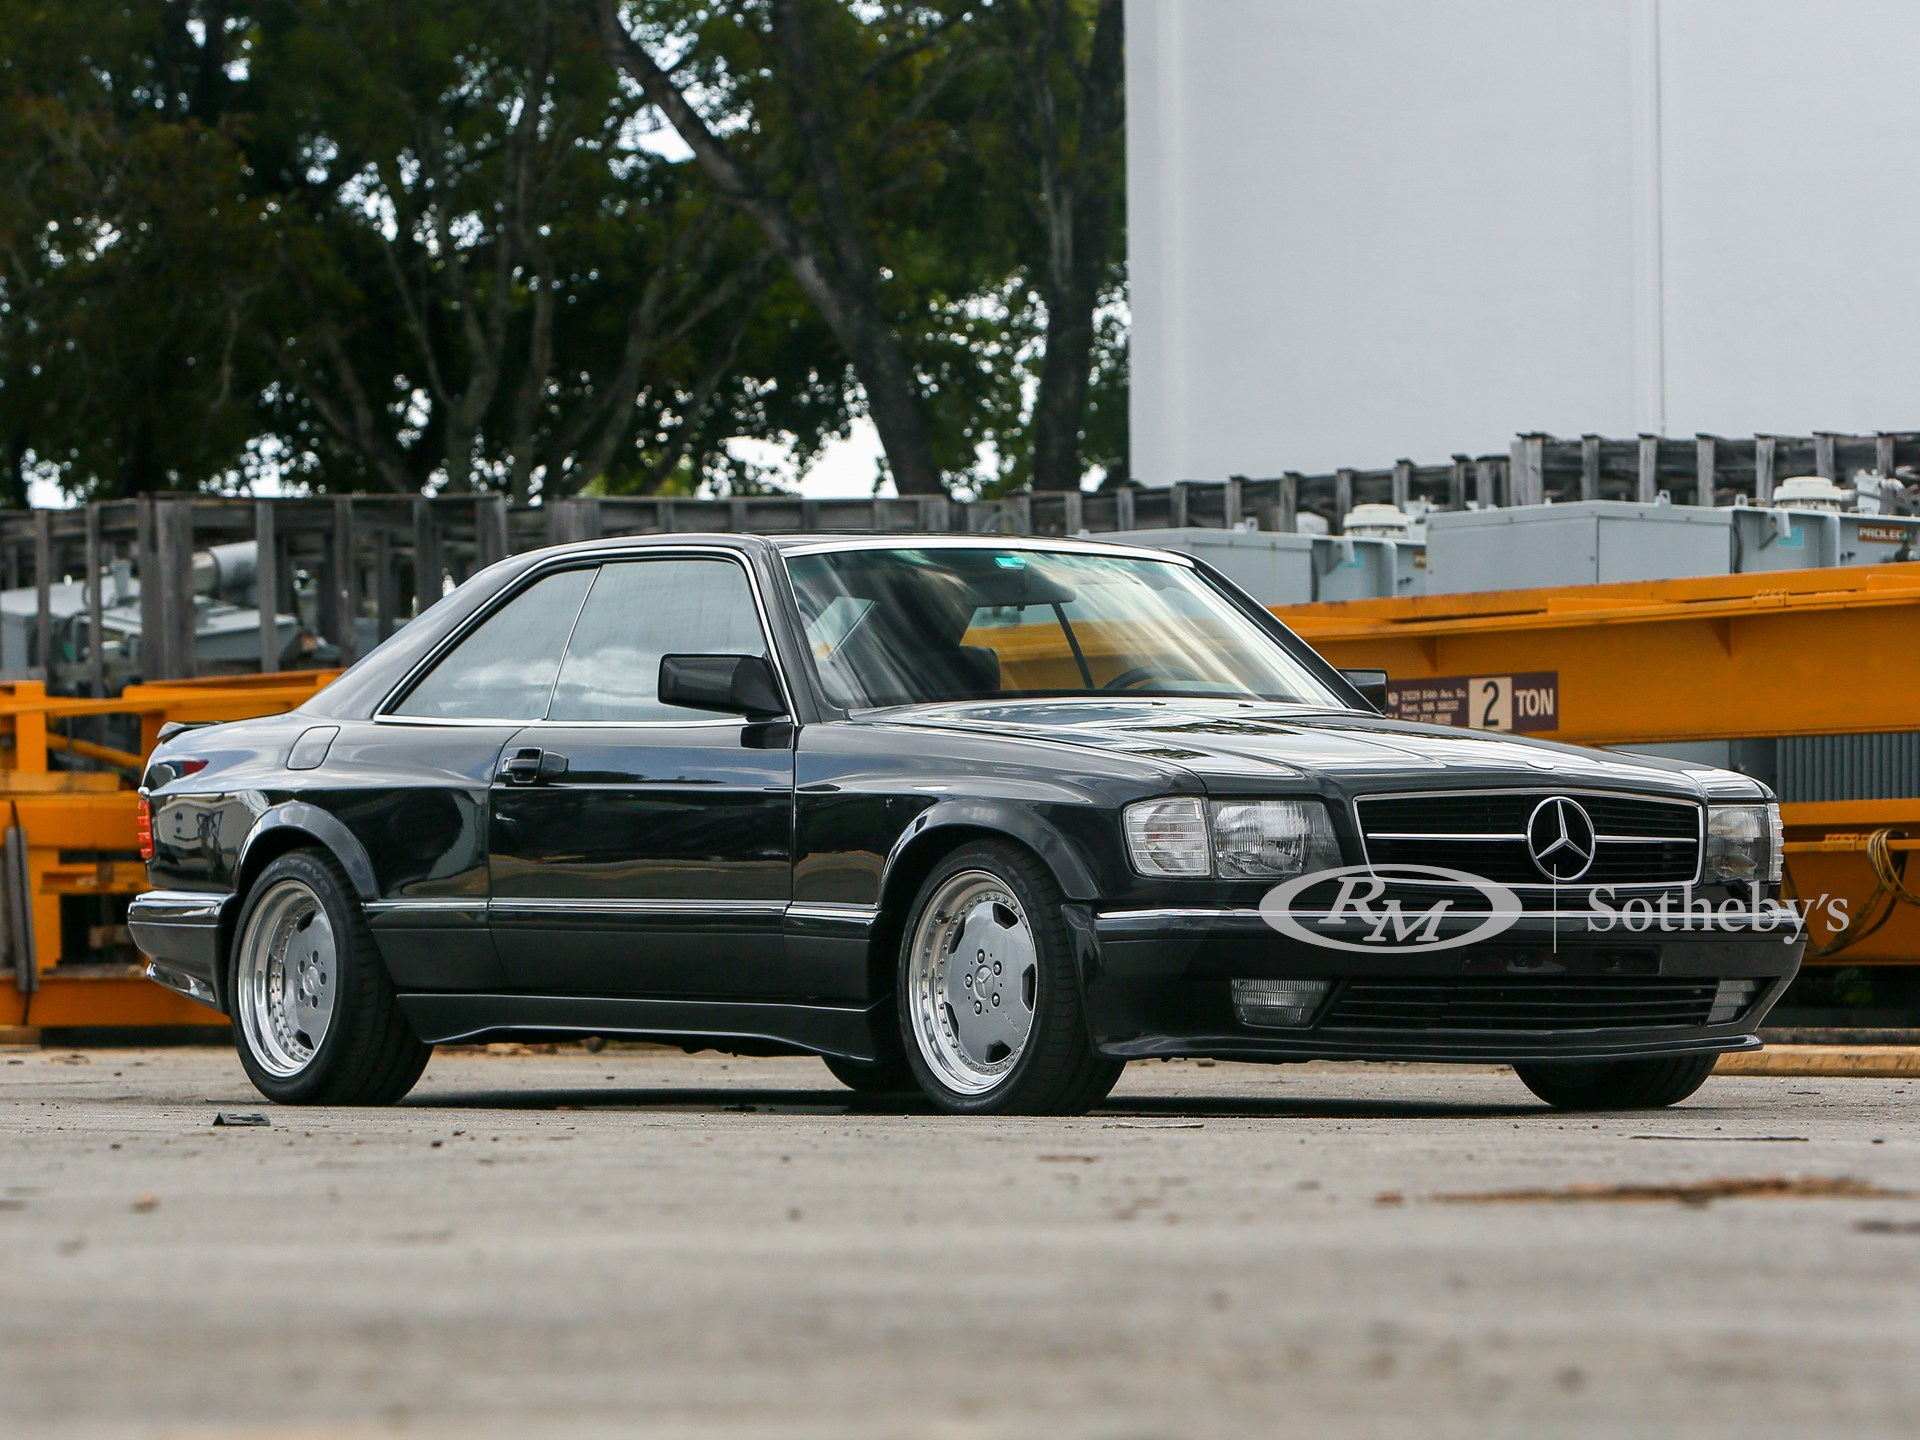 1990 Mercedes Benz 560 Sec Amg 6 0 Wide Body Amelia Island 2020 Rm Sotheby S